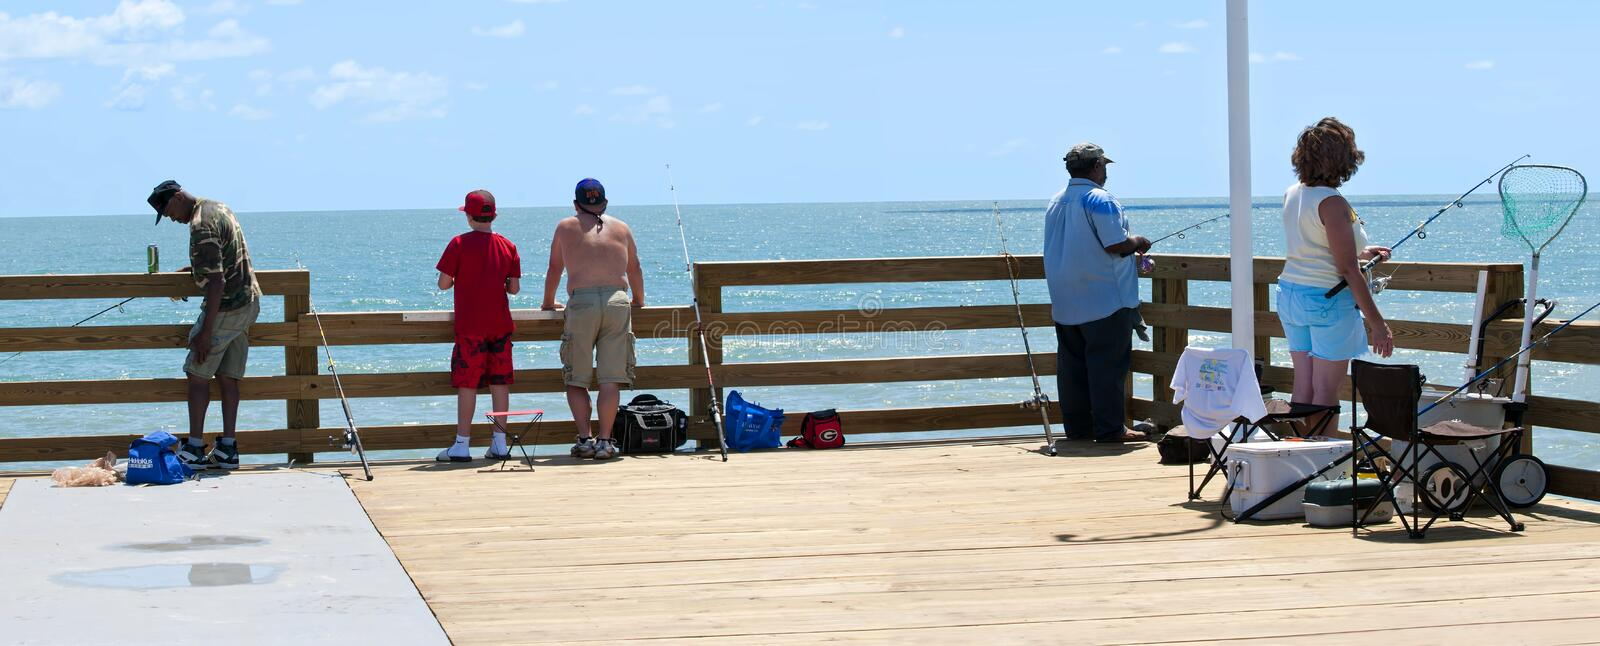 Daytona Beach Pier. DAYTONA BEACH, FLORIDA, UNITED STATES - JUNE 18, 2012: FISHING PIER. Fishermen enjoying the renovated fishing pier at Daytona Beach, Florida stock images